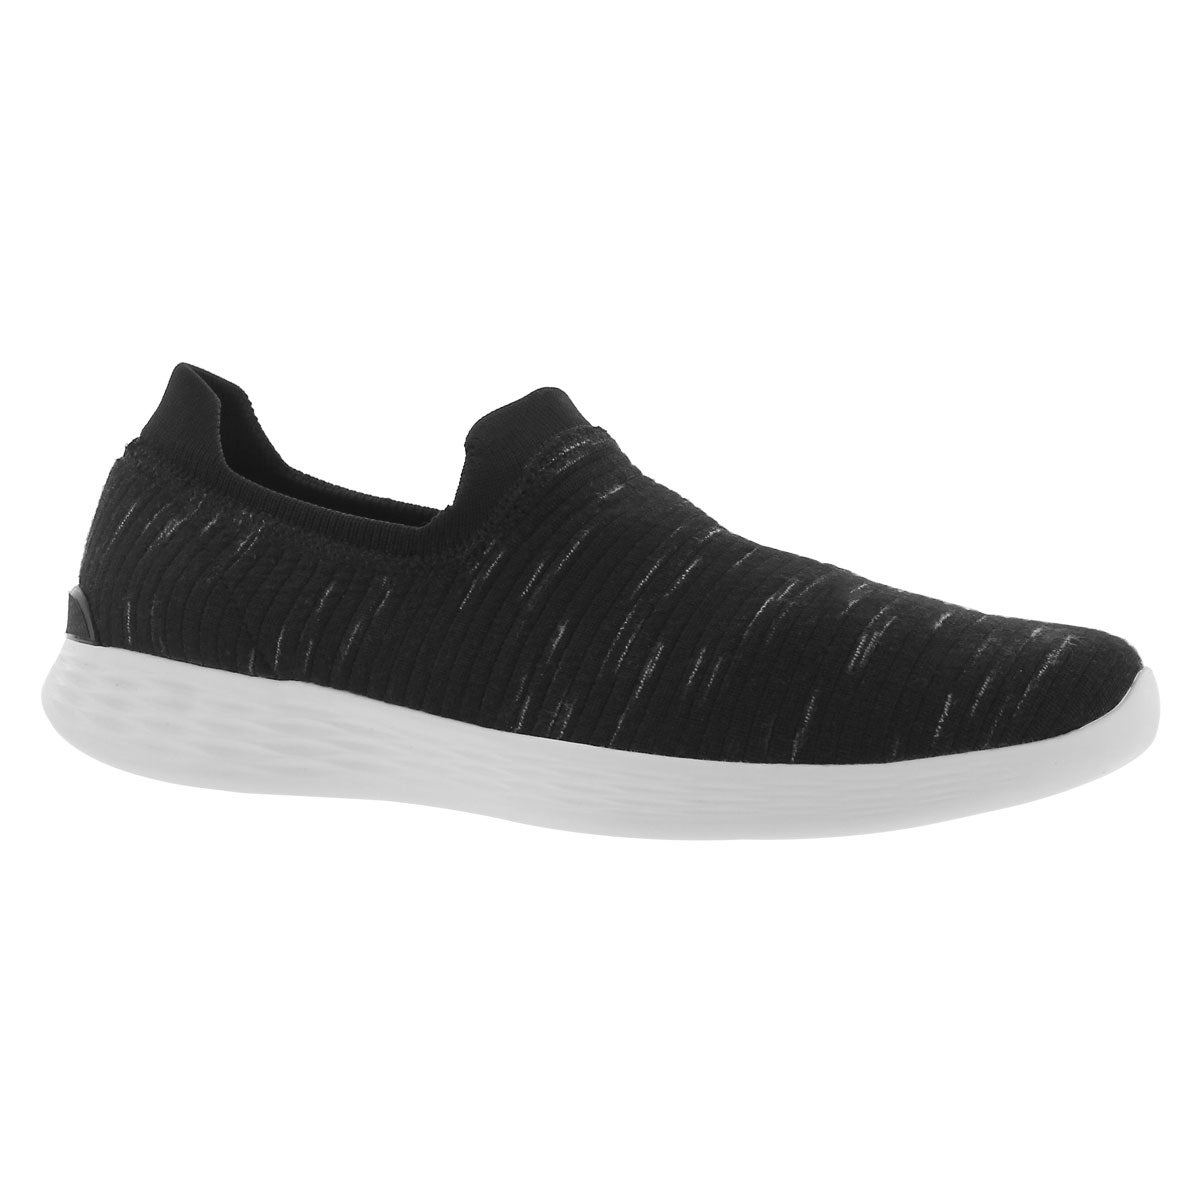 Women's YOU DEFINE black/white slip on shoes